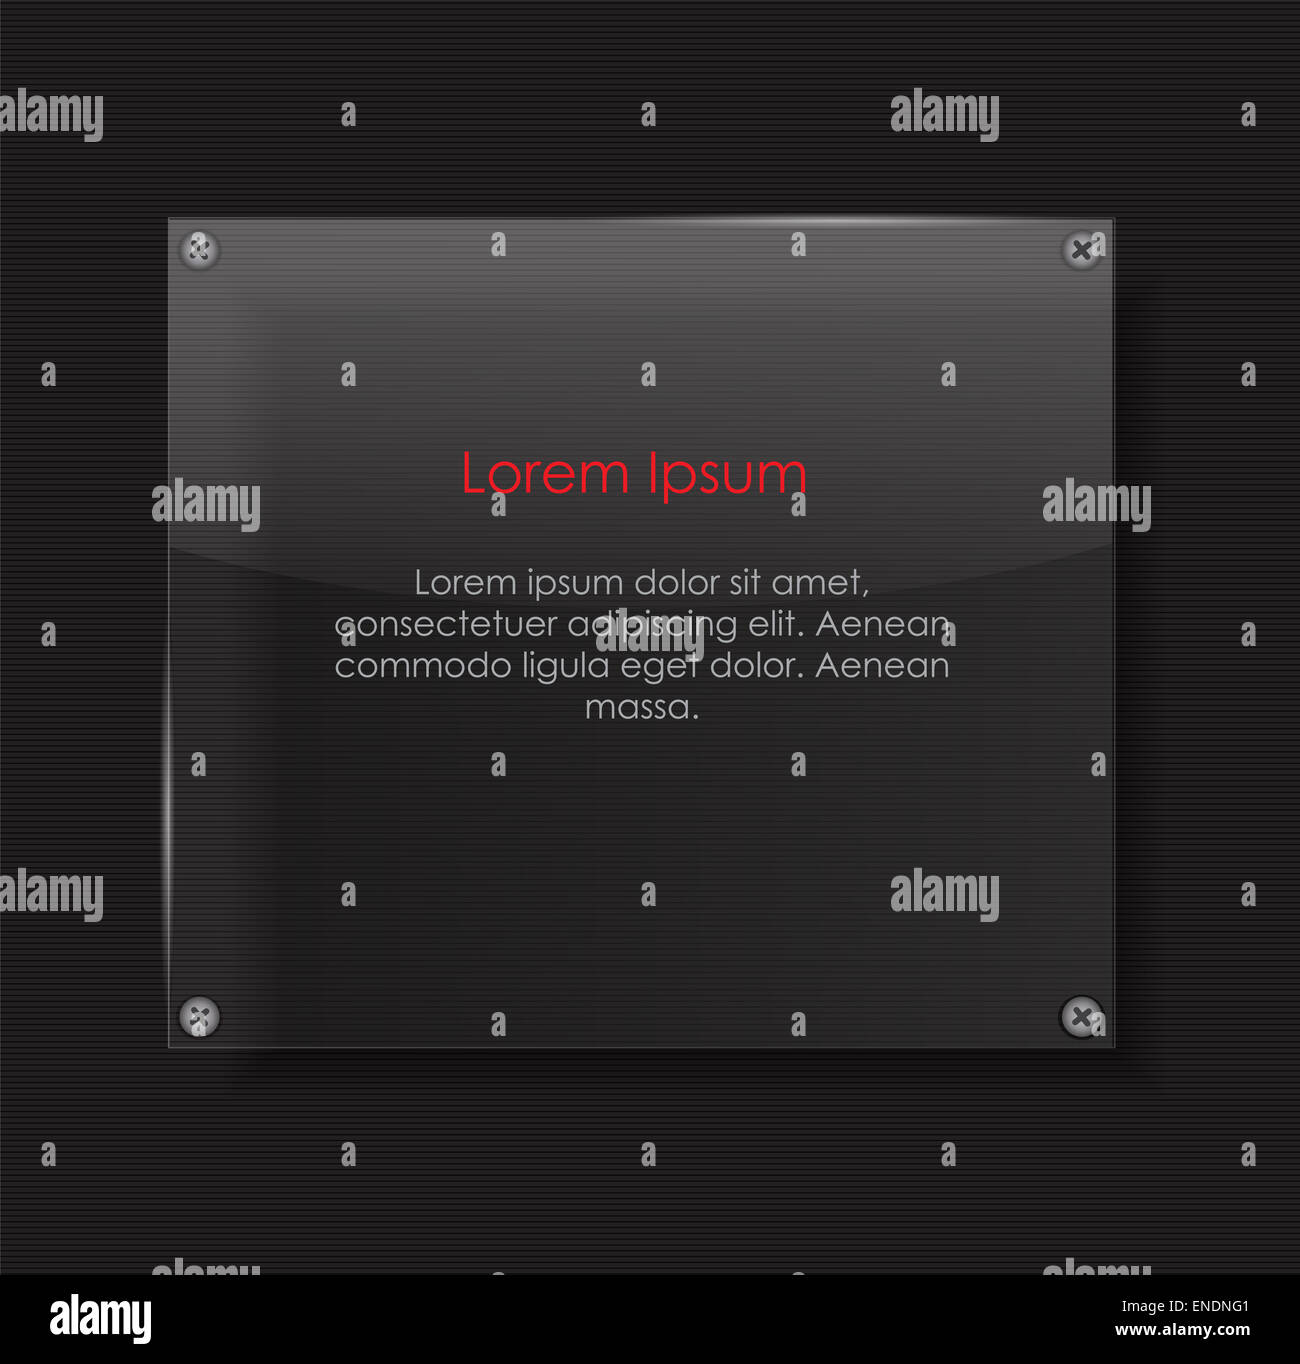 Glass Transparency Frame Vector Illustration EPS10 - Stock Image